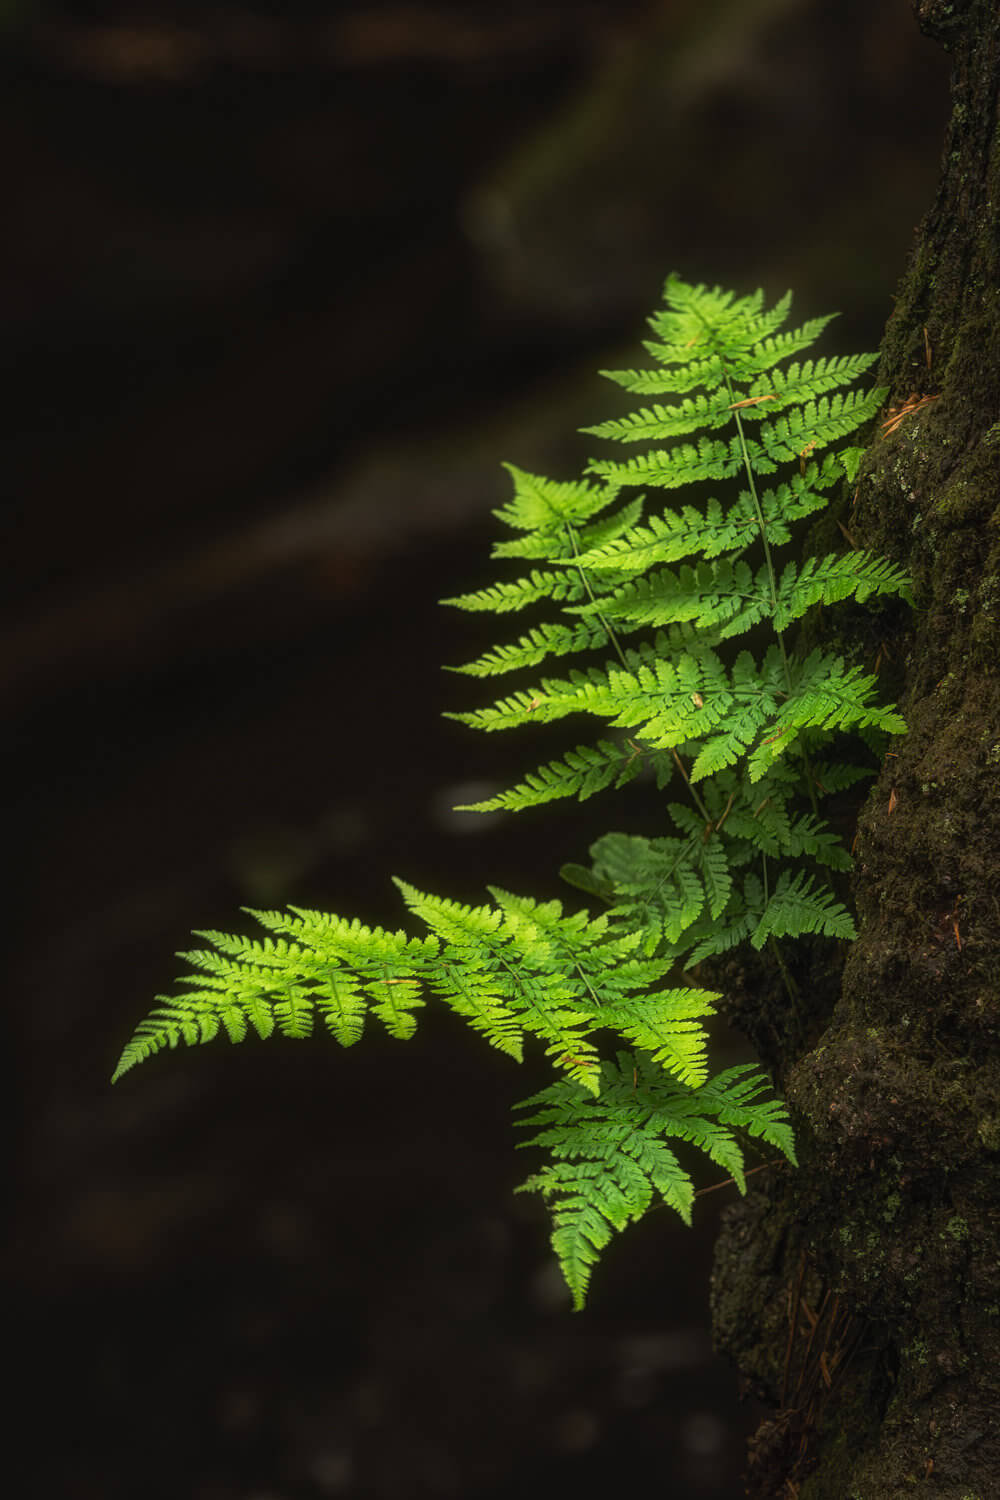 fern-Alan-Ranger-Photography.jpg